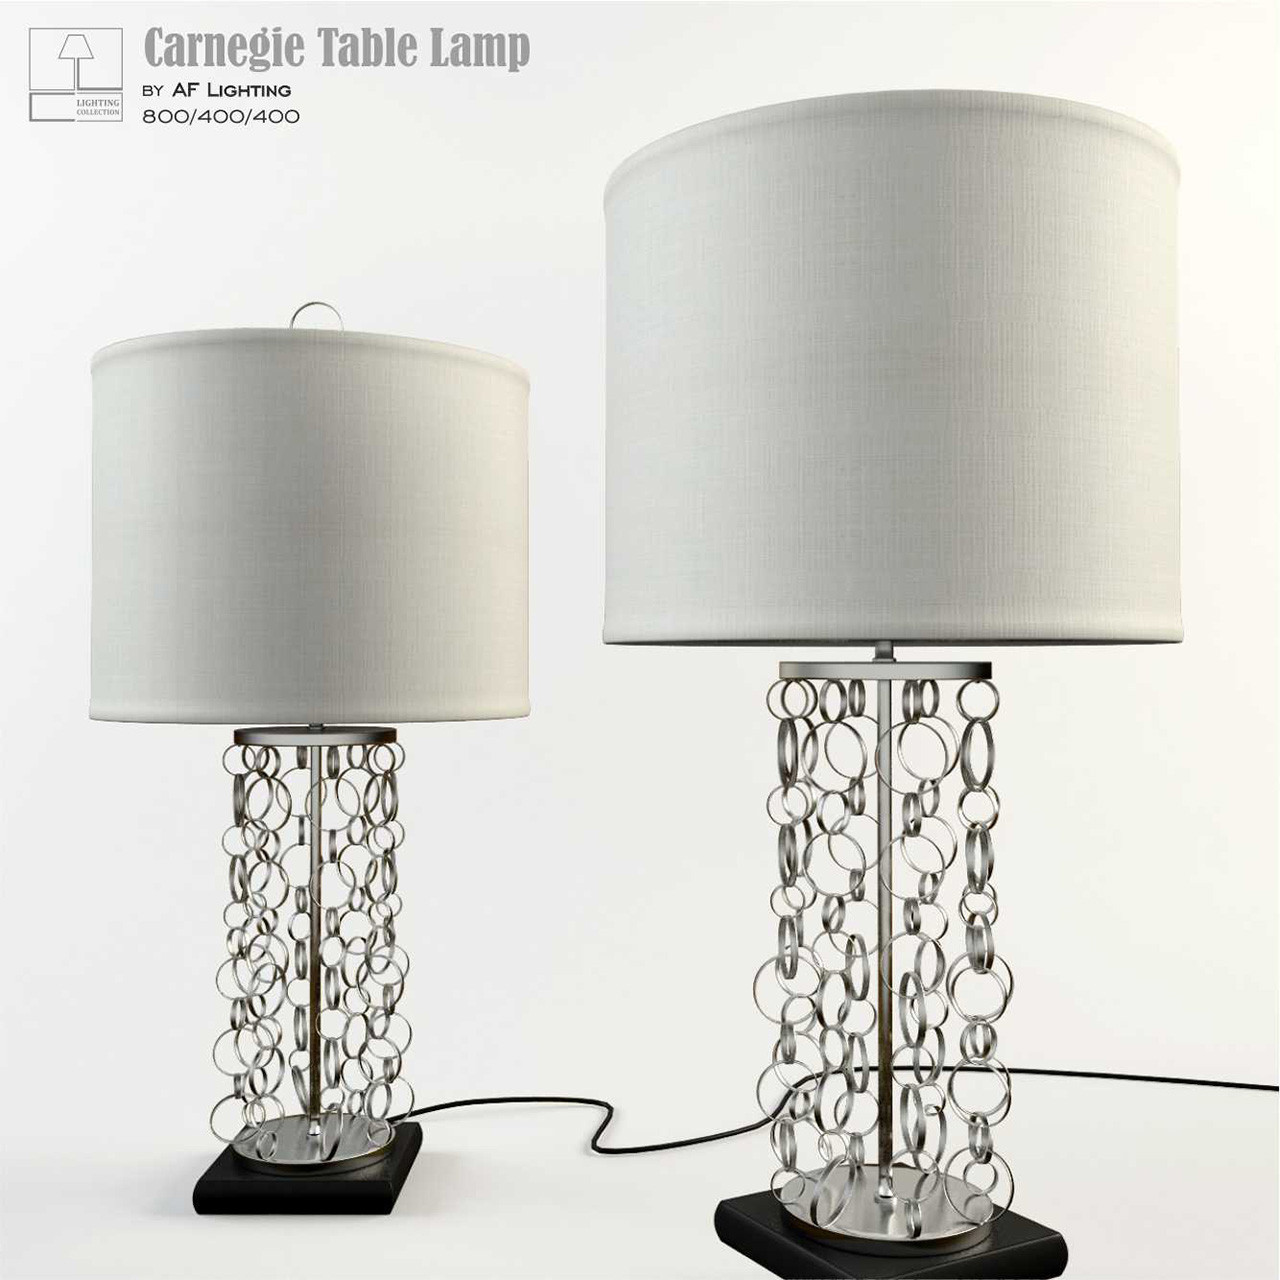 Carnegie Table Lamp_a.jpg